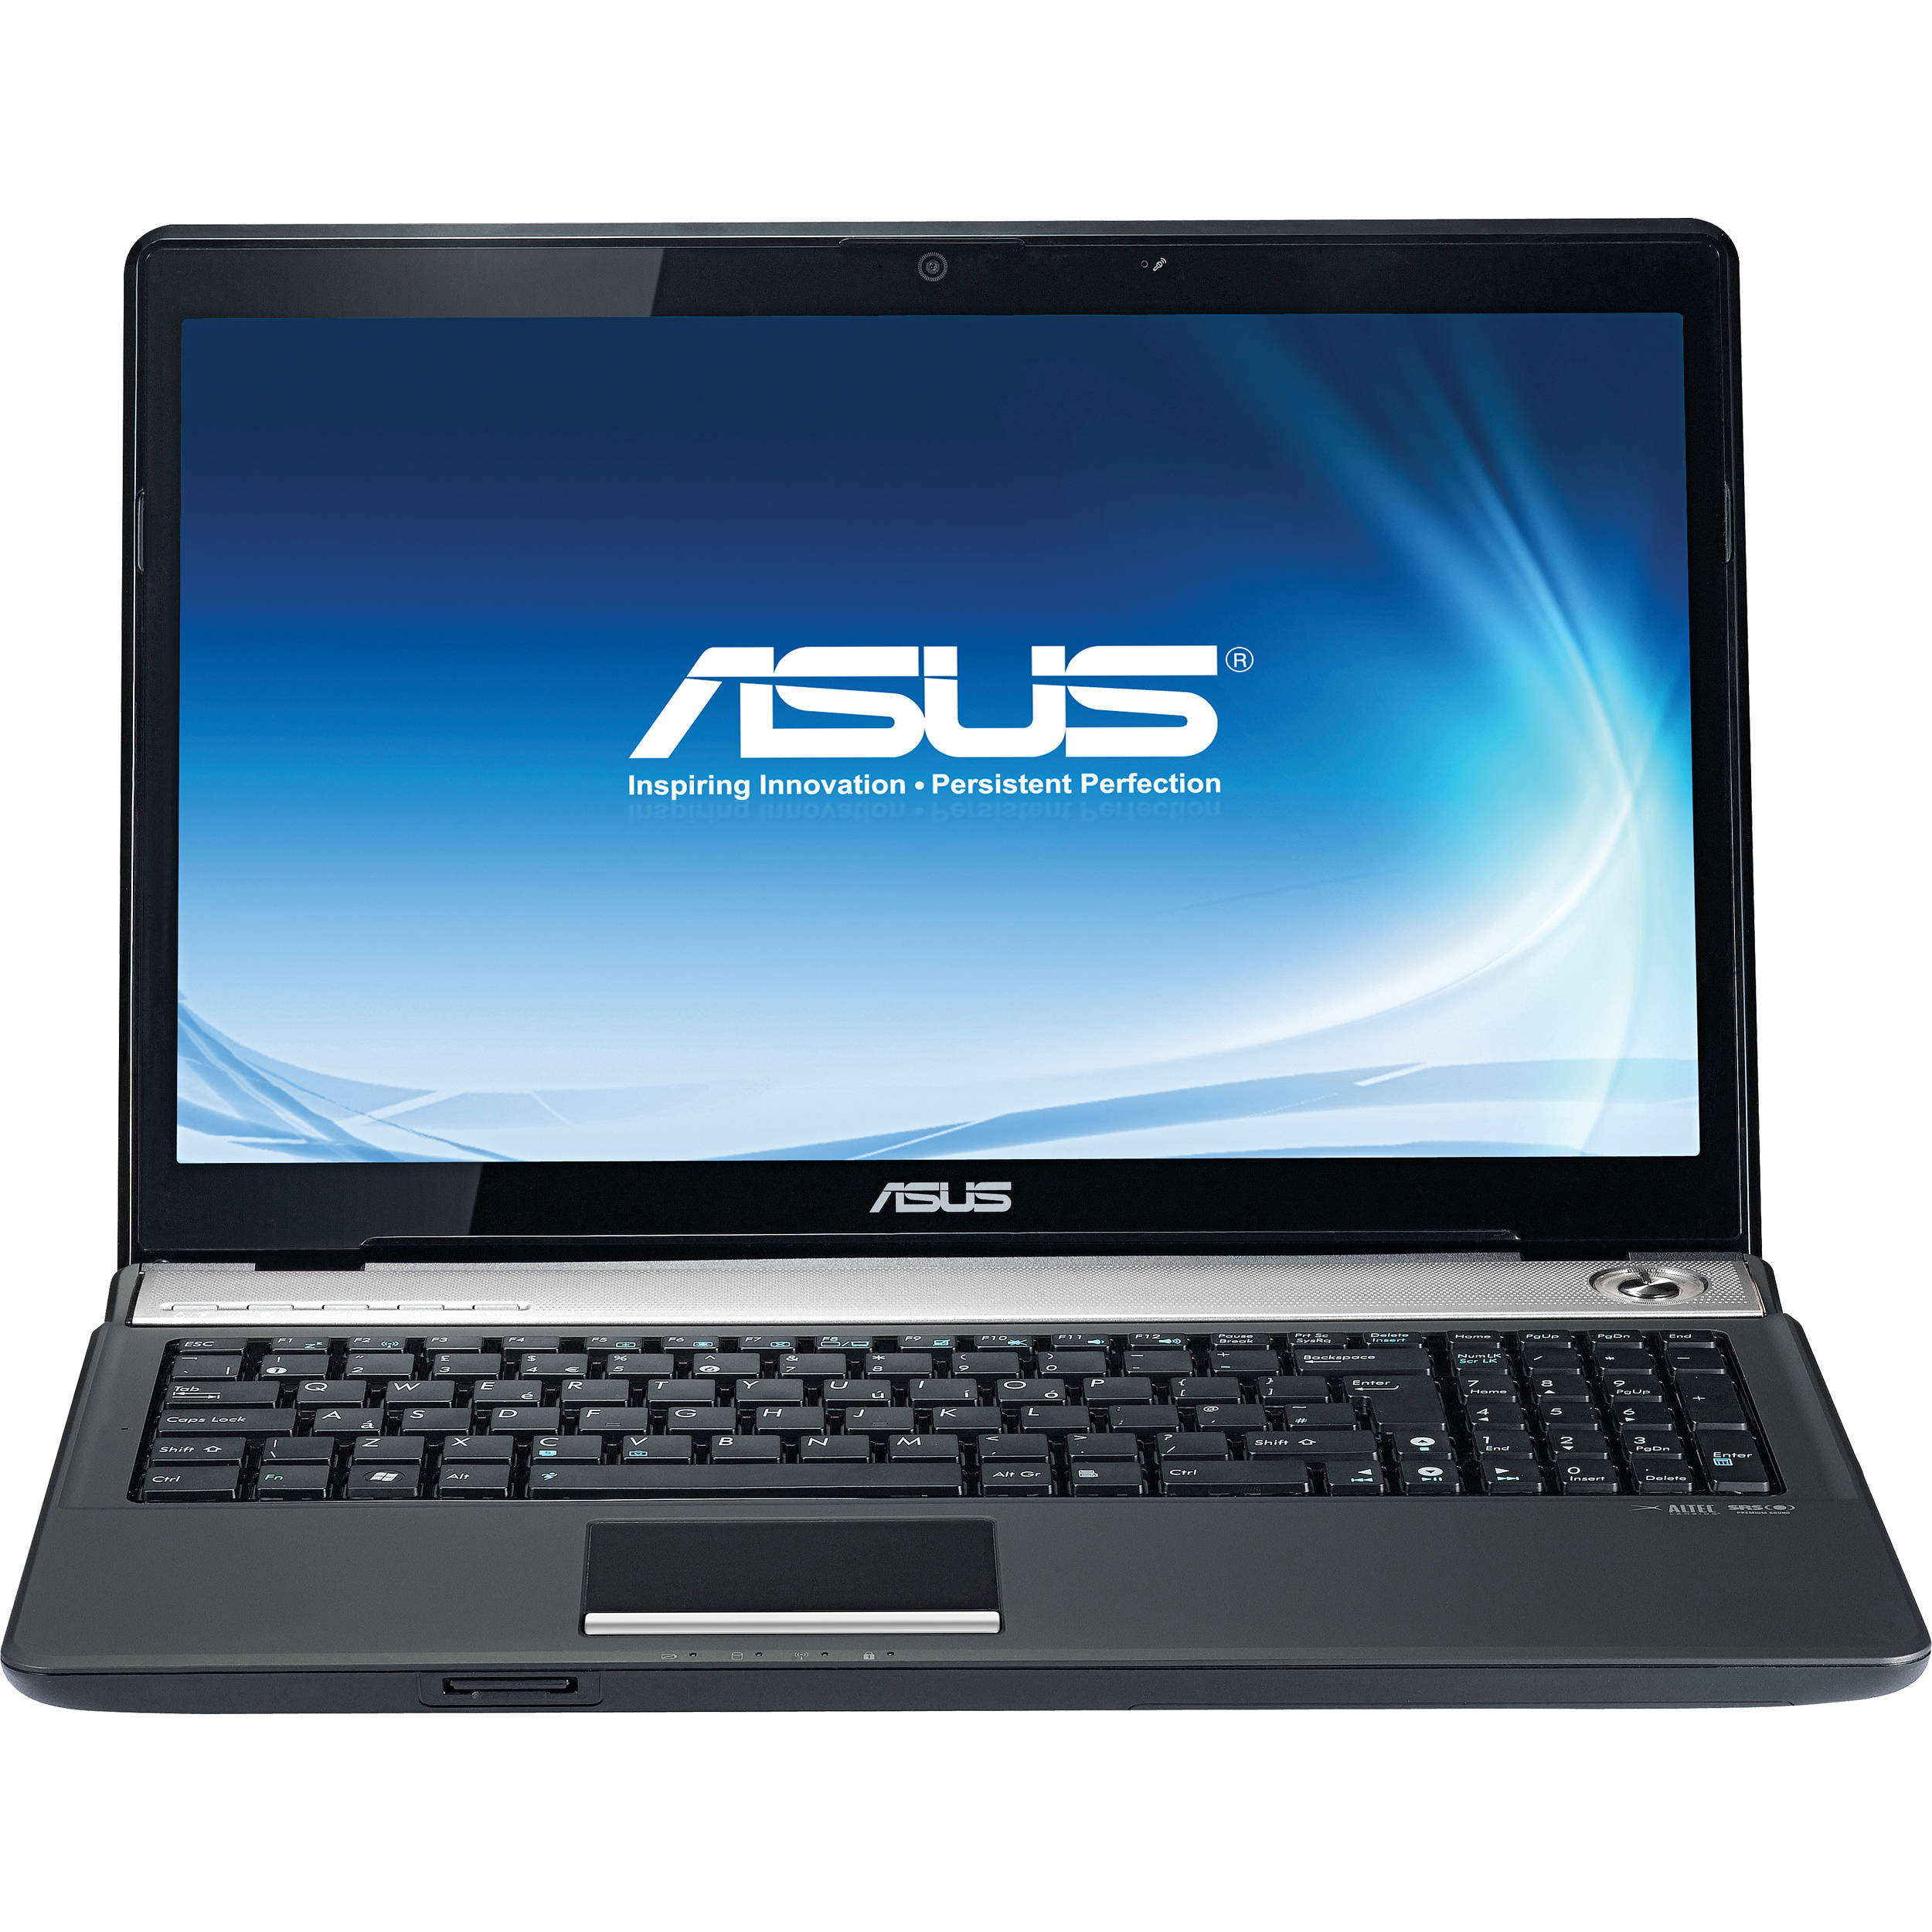 ASUS N61JQ NOTEBOOK MULTI-CARD READER X64 DRIVER DOWNLOAD